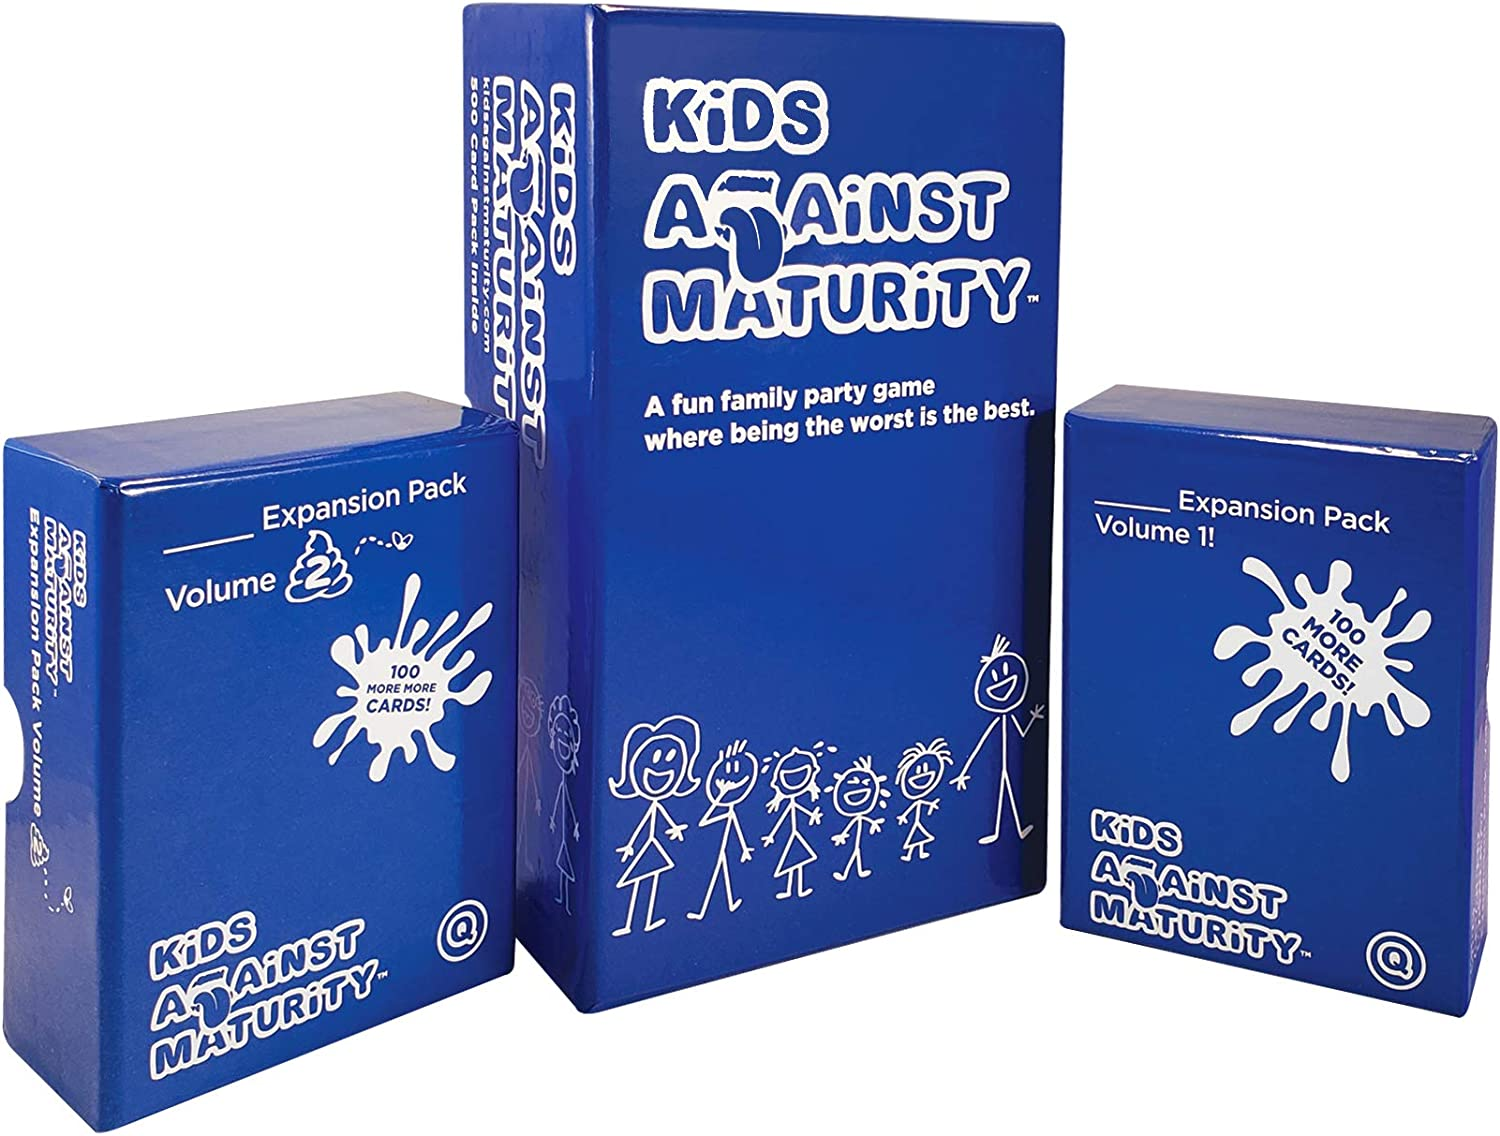 Super Fun Family Game Card Game for Kids and Humanity Kids Against Maturity